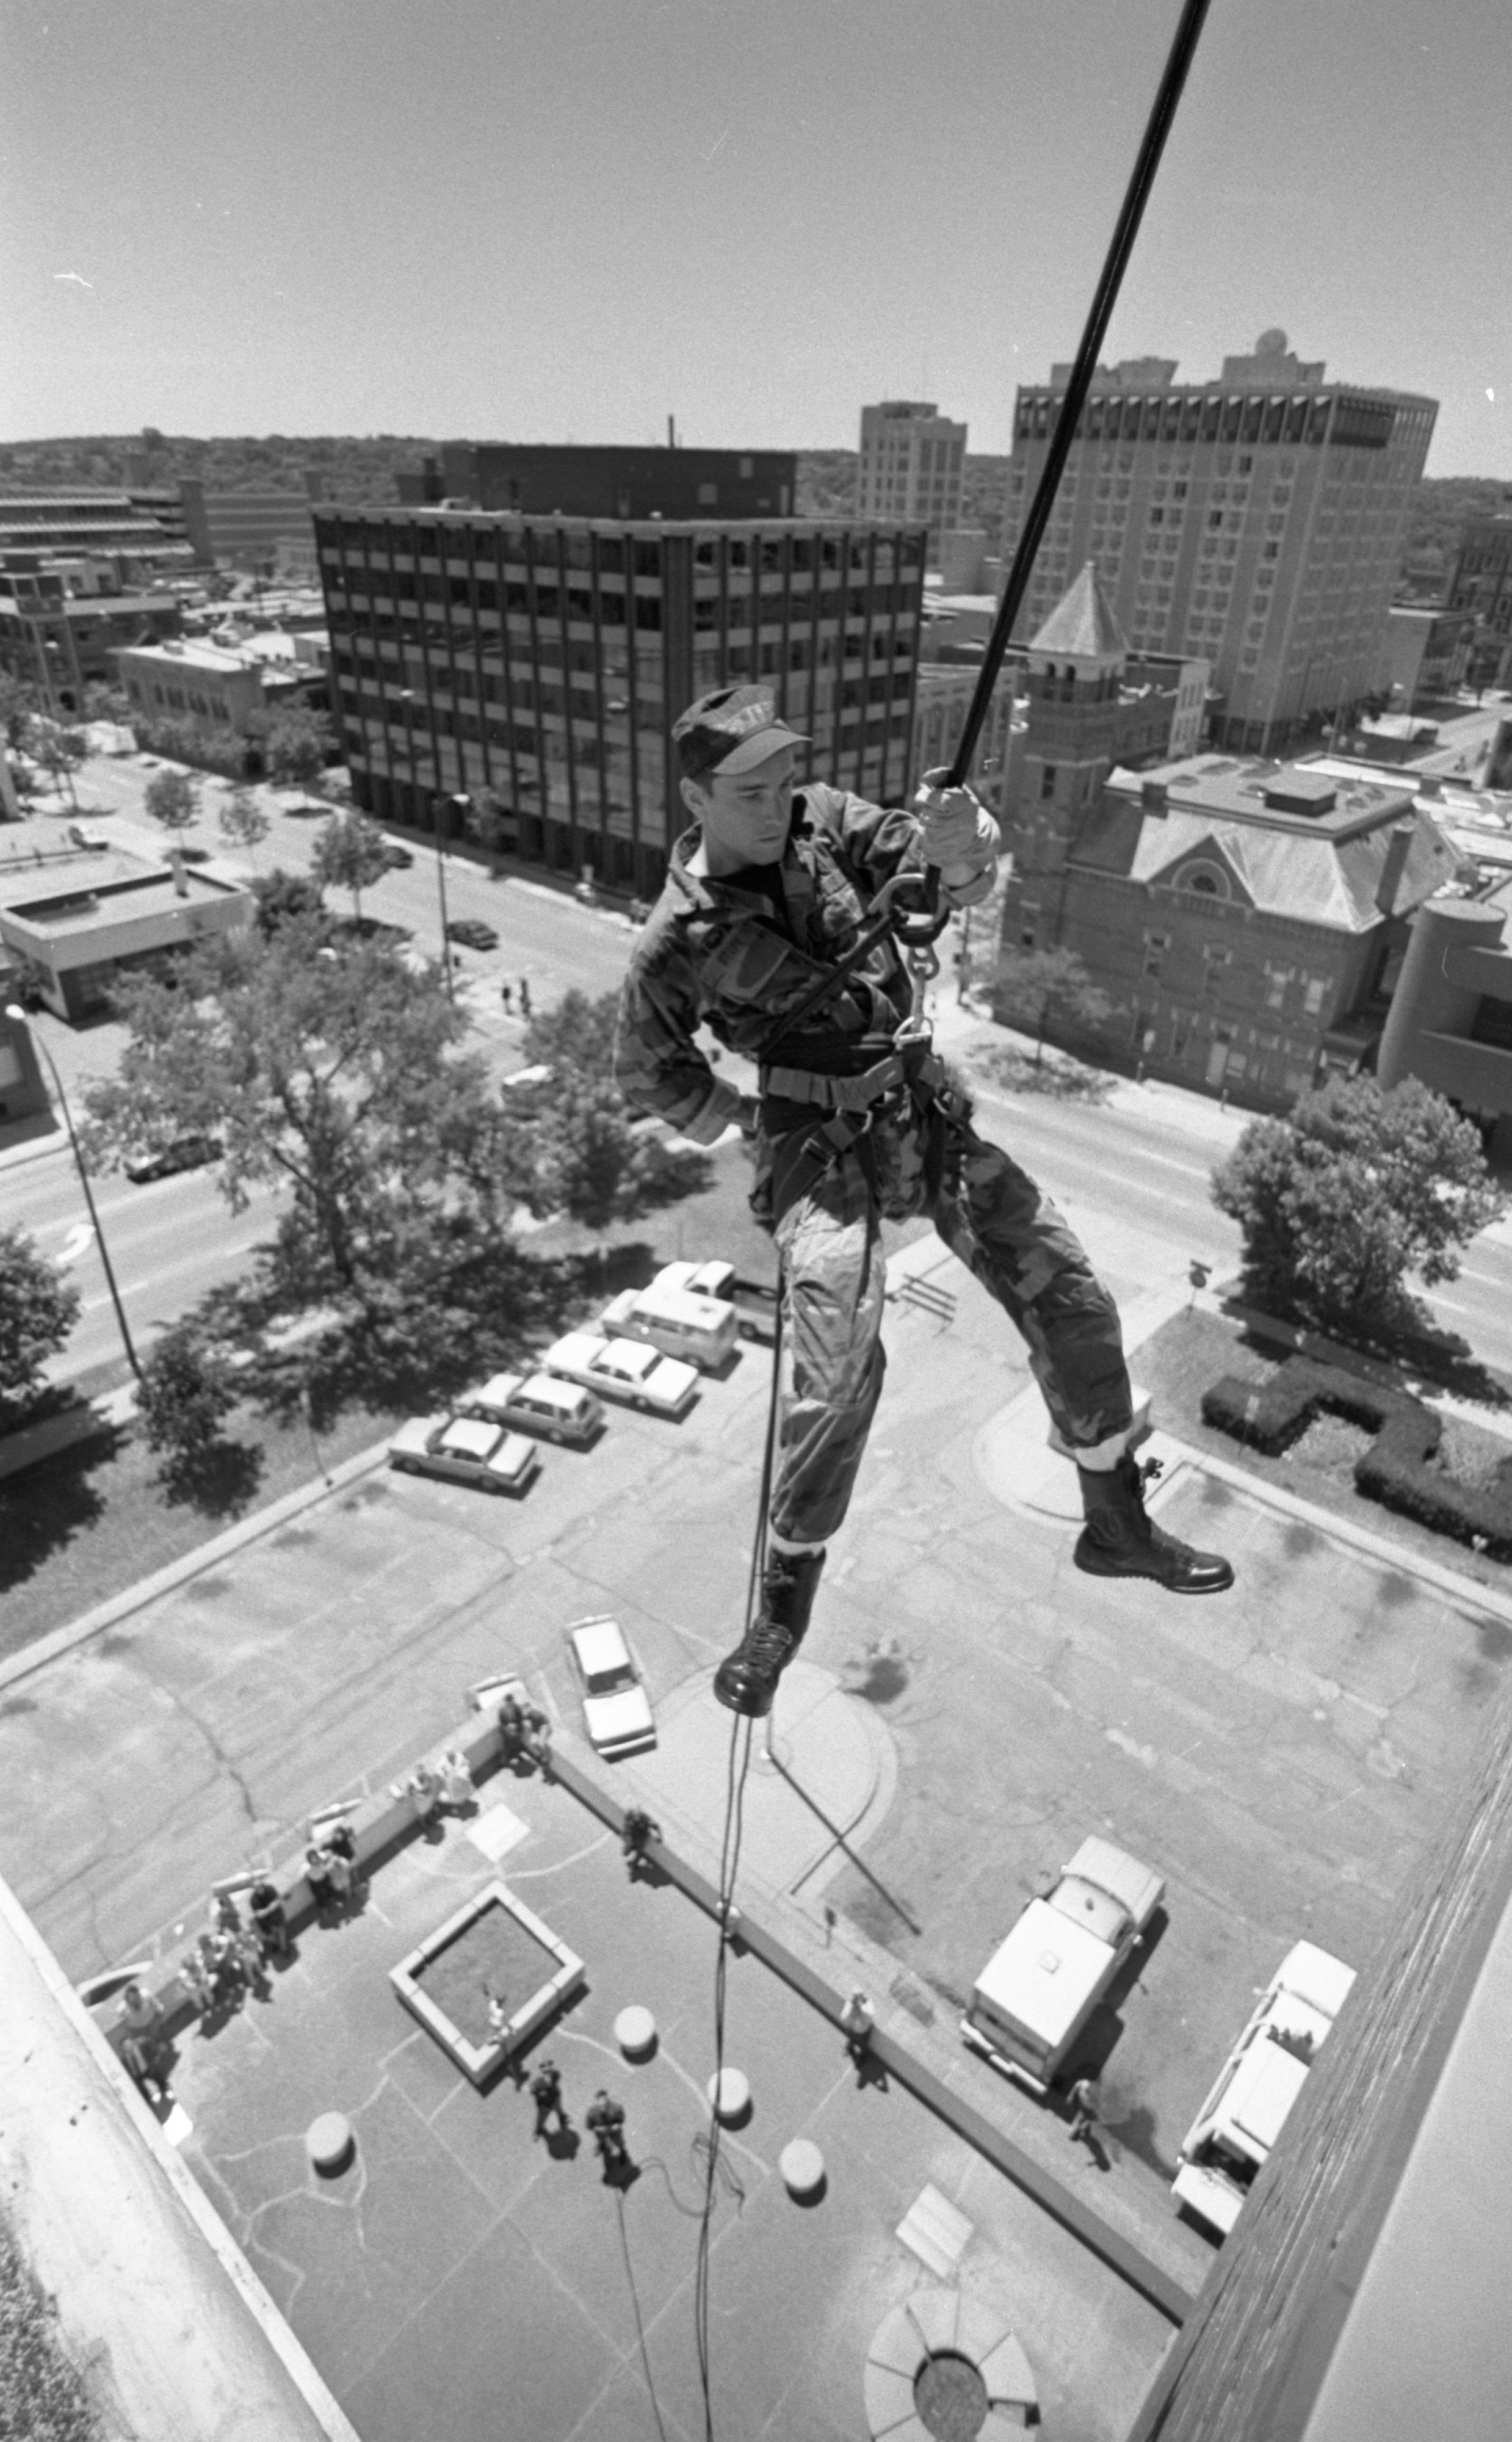 Officer Peter Stipe, AAPD Special Tactics Unit, Demonstrates Rappelling From The Top Of City Hall, June 1991 image